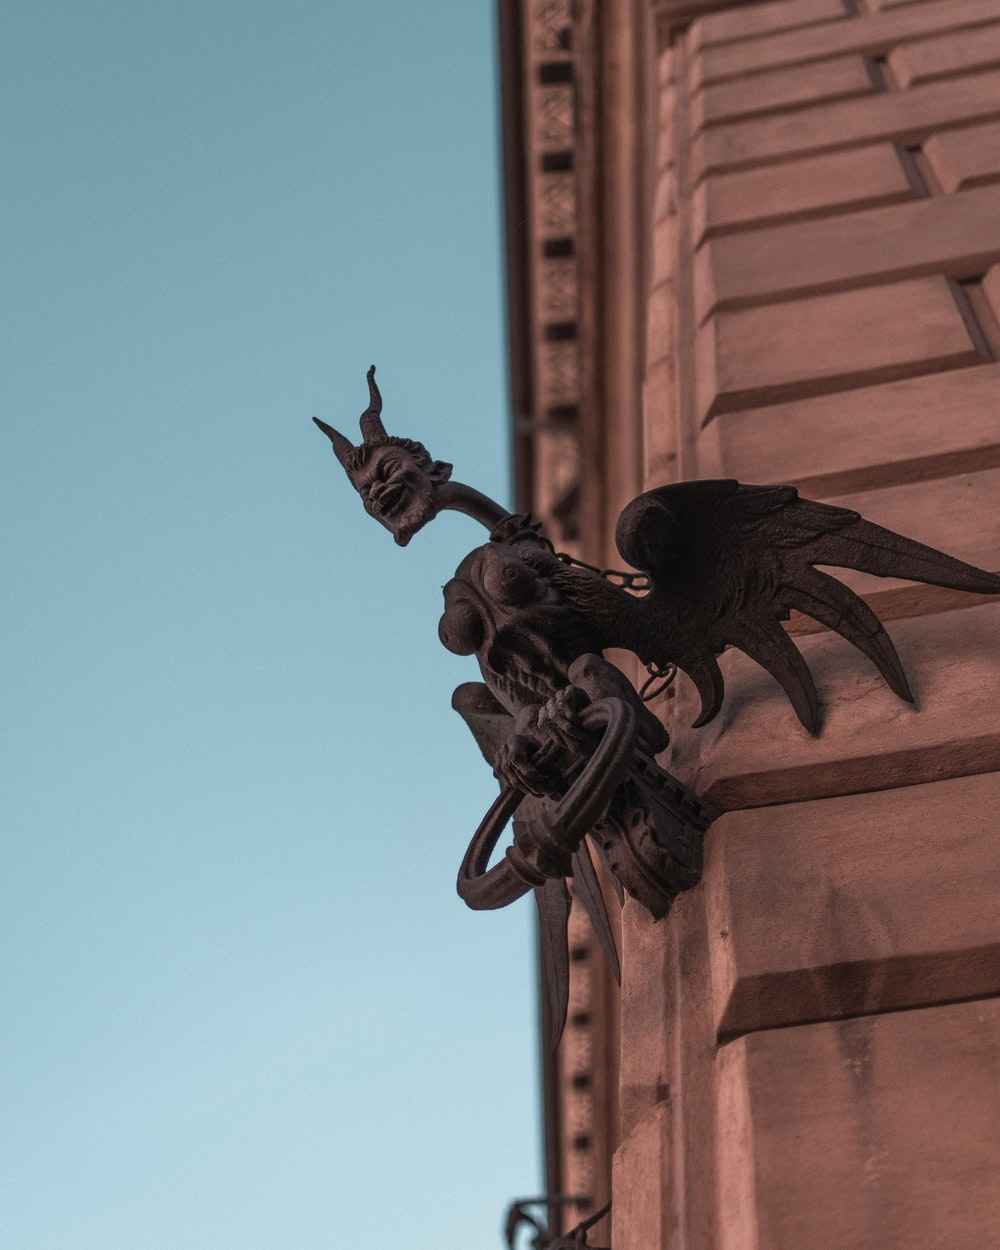 black dragon statue on brown concrete building during daytime